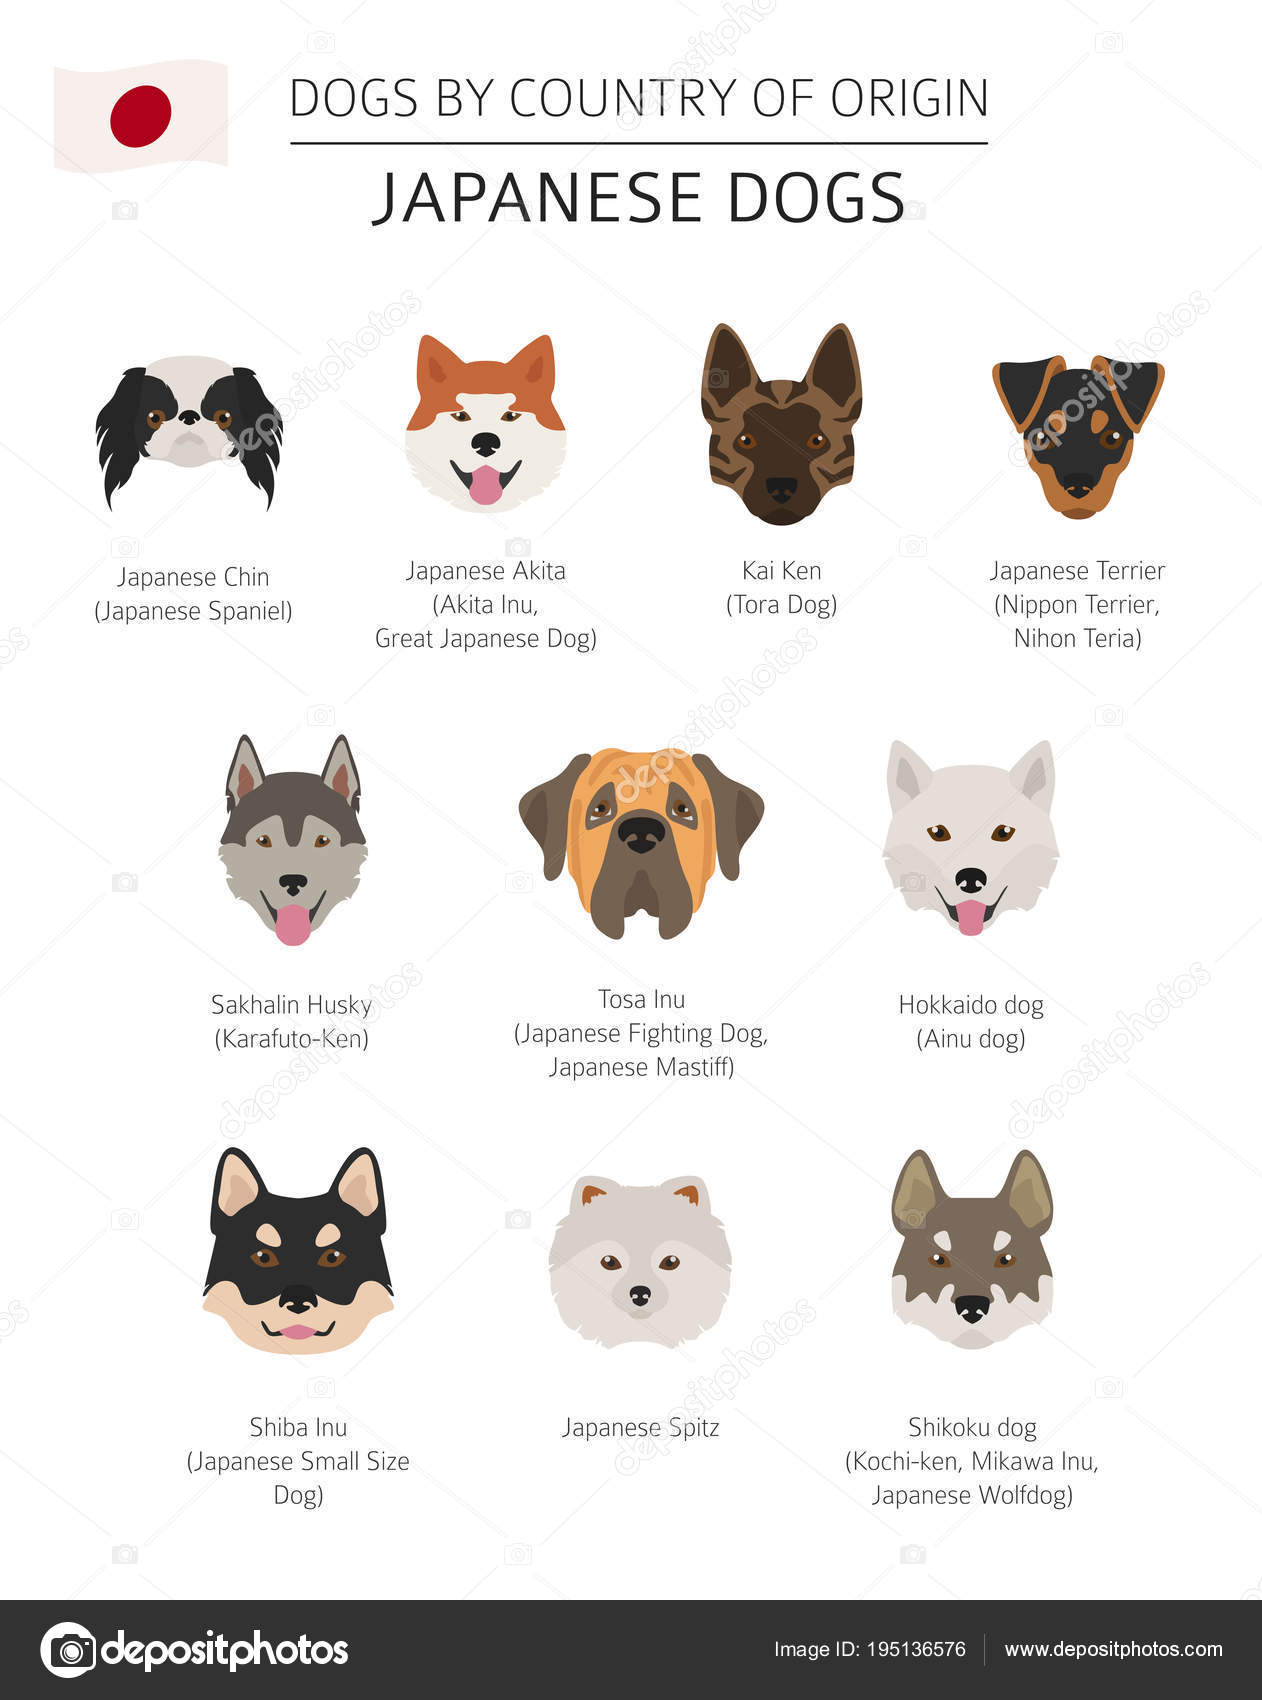 Dogs By Country Of Origin Japanese Dog Breeds Infographic Temp Stock Il Ration